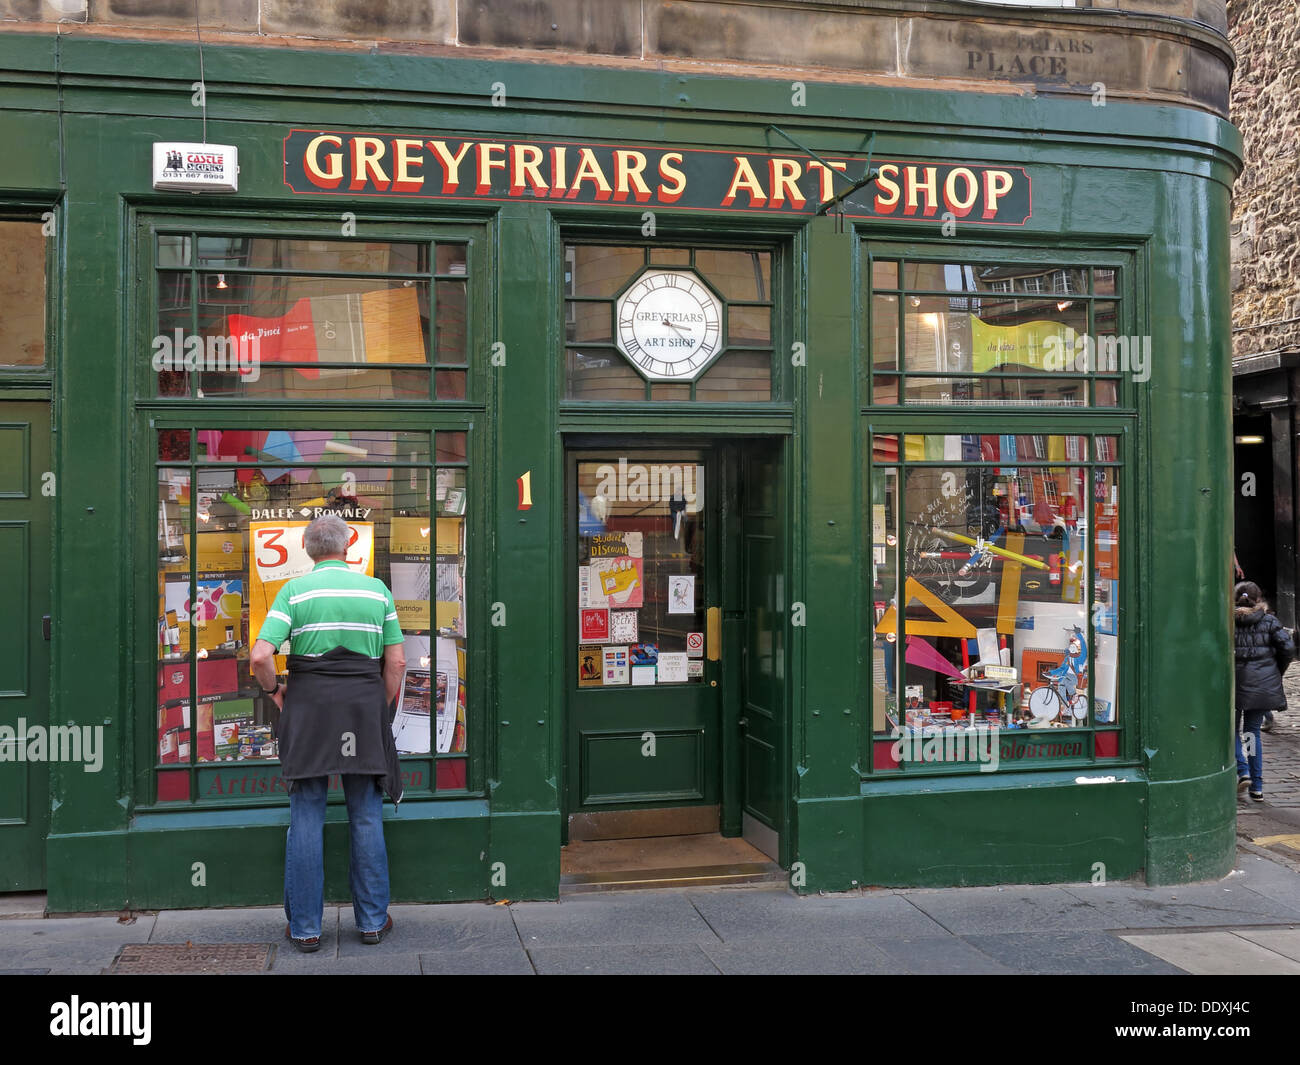 Greyfriars Art Shop, Edinburgh, Scotland, UK, EH1 2QQ - Stock Image